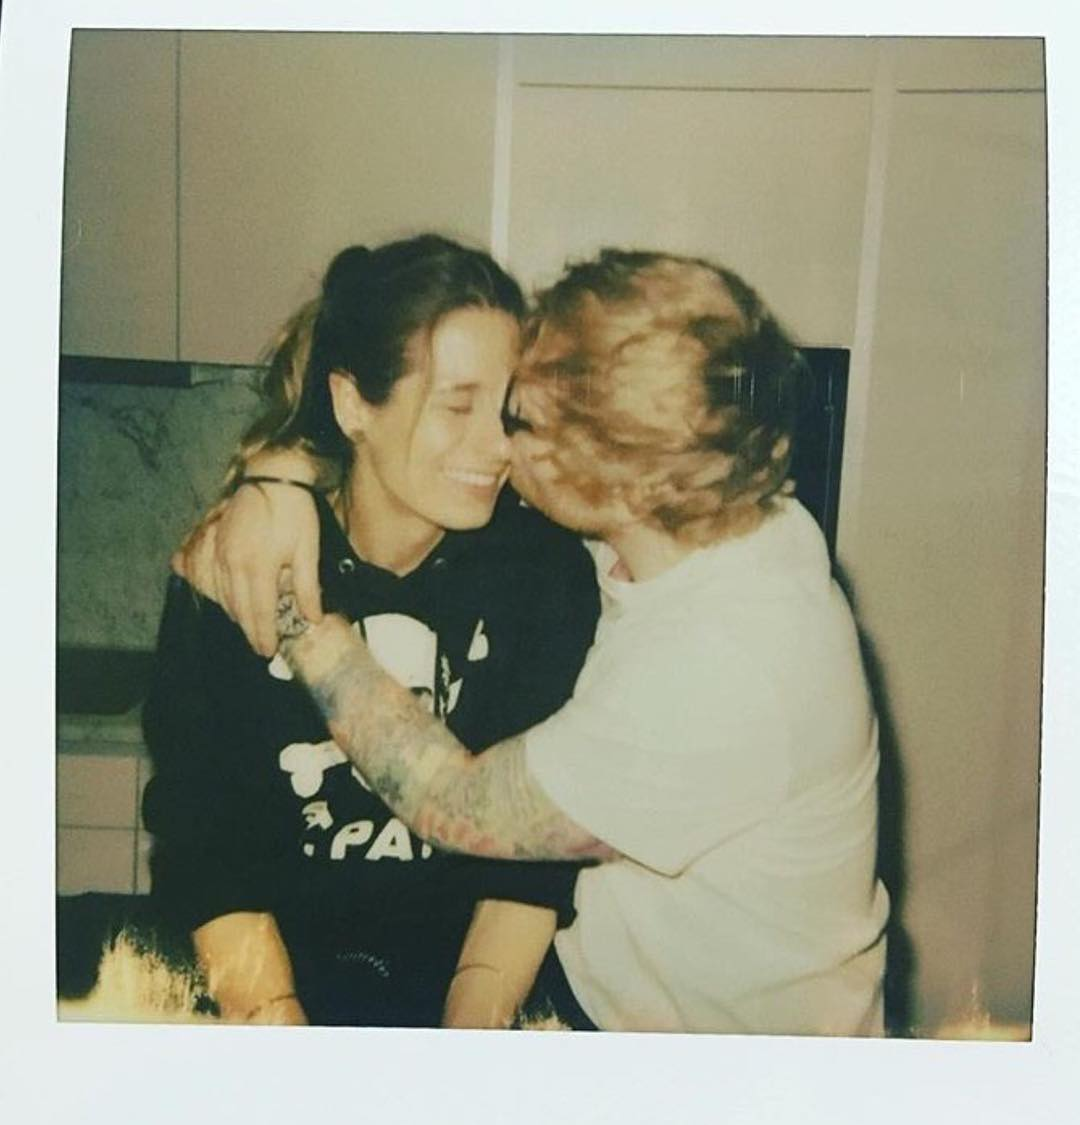 Ed Sheeran Announces Engagement To Childhood Sweetheart Cherry Seaborn In Touching Instagram Post